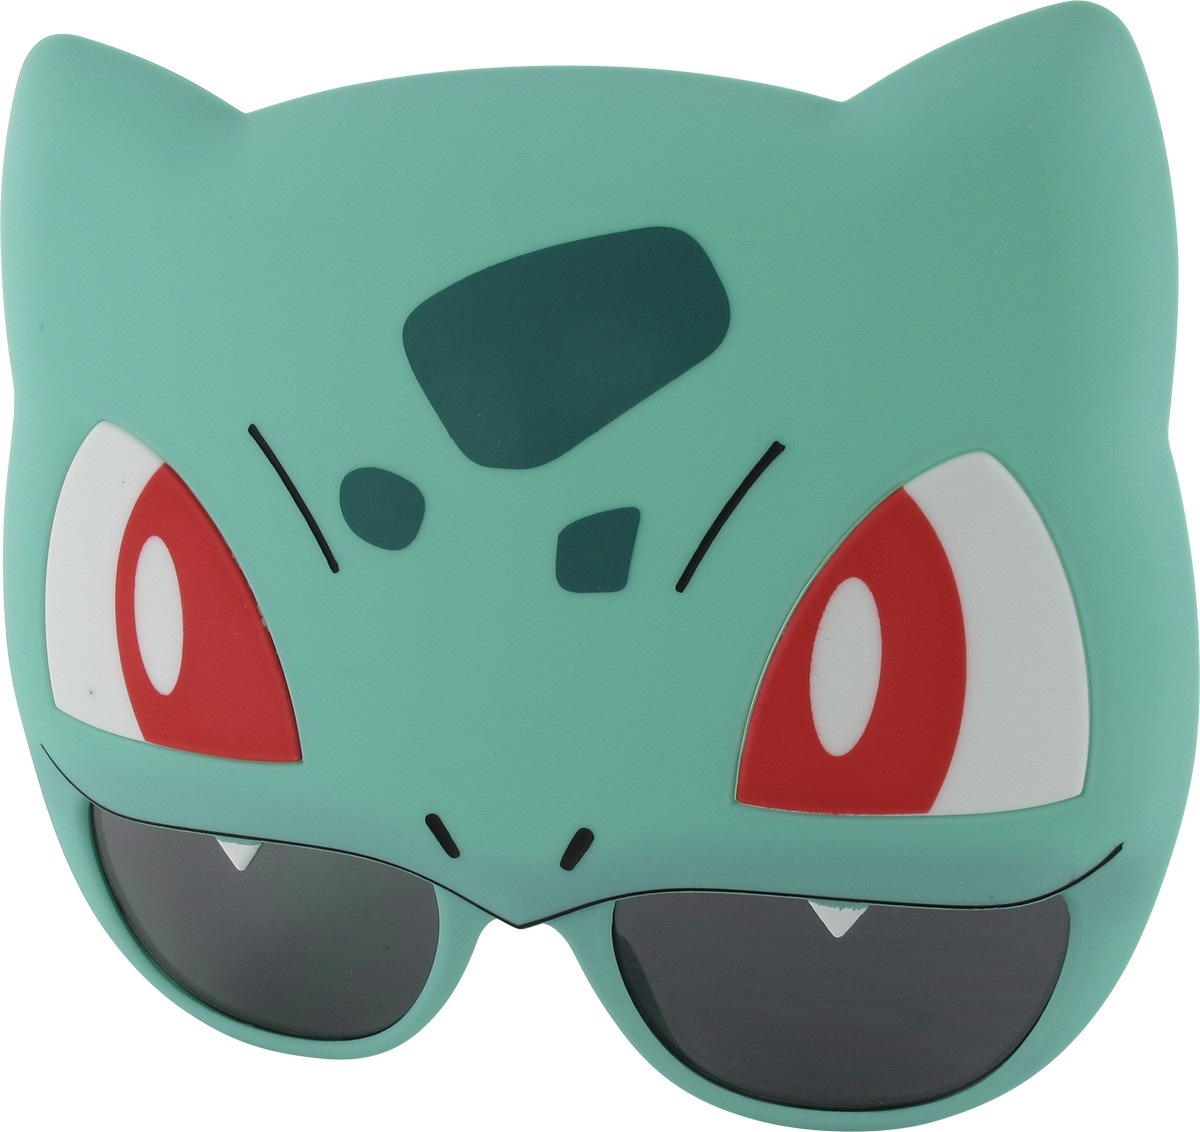 Glasses Pokemon Bulbasaur Cost